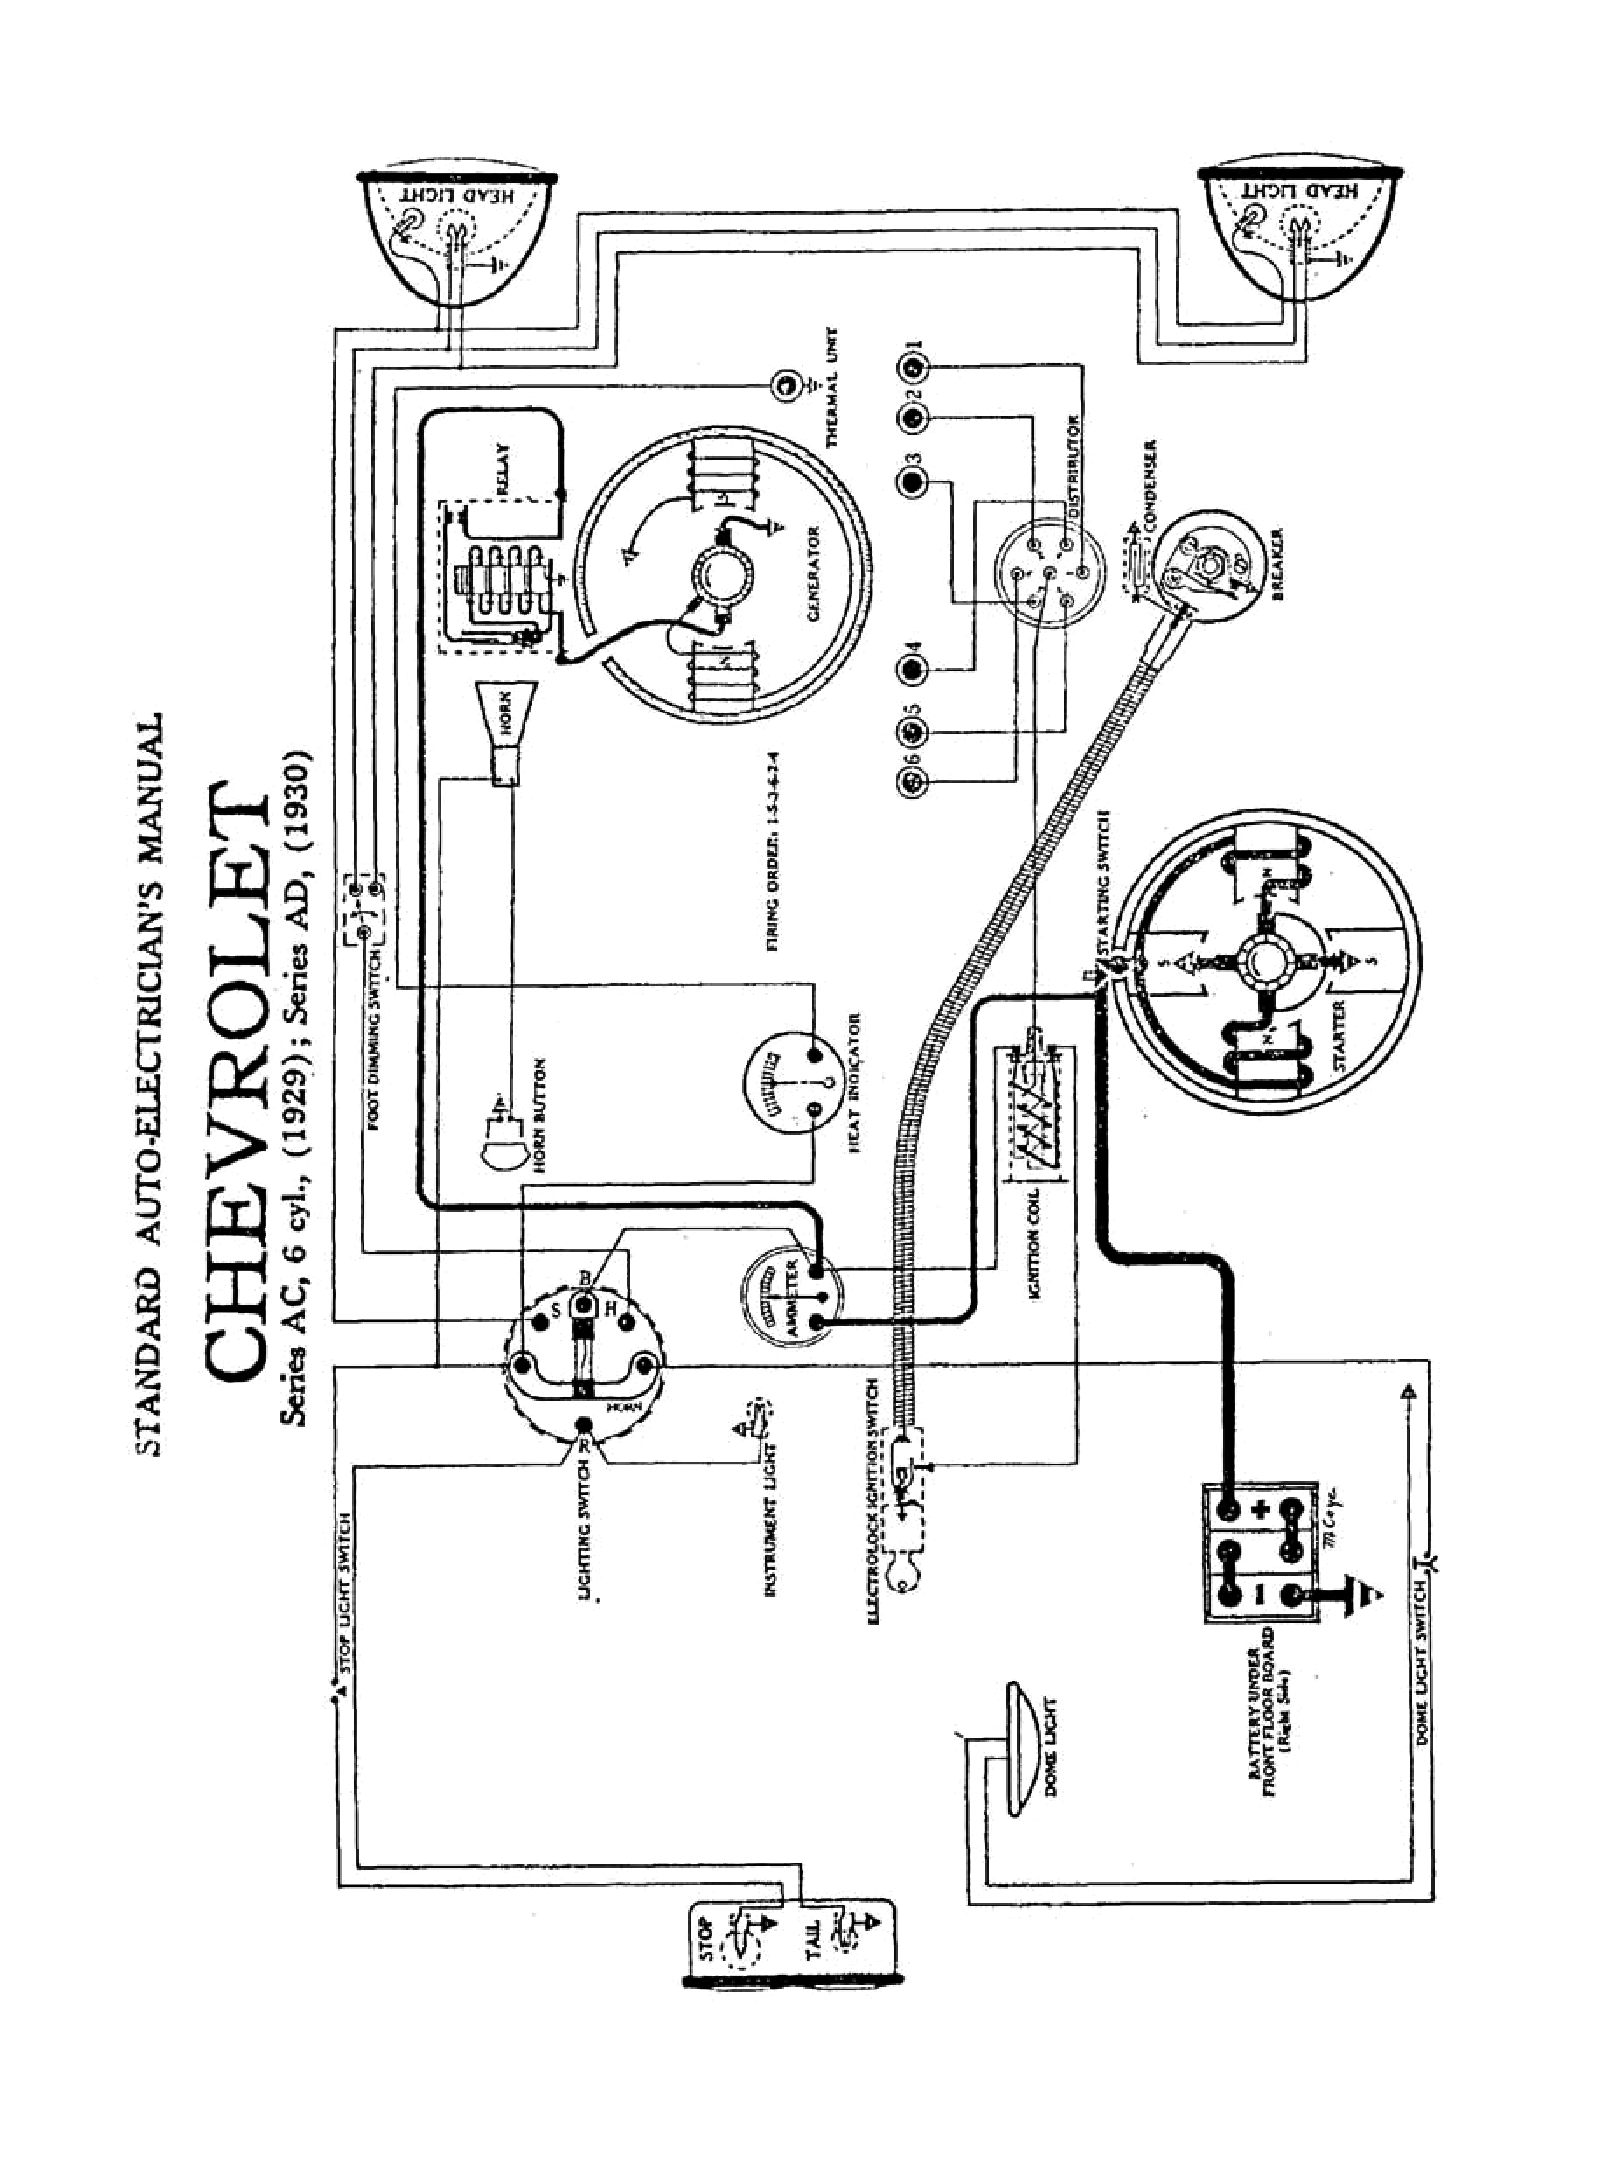 1931 Ford Wiring Diagram Free Starting Know About Obd1 Pinout Chevrolet Get Image